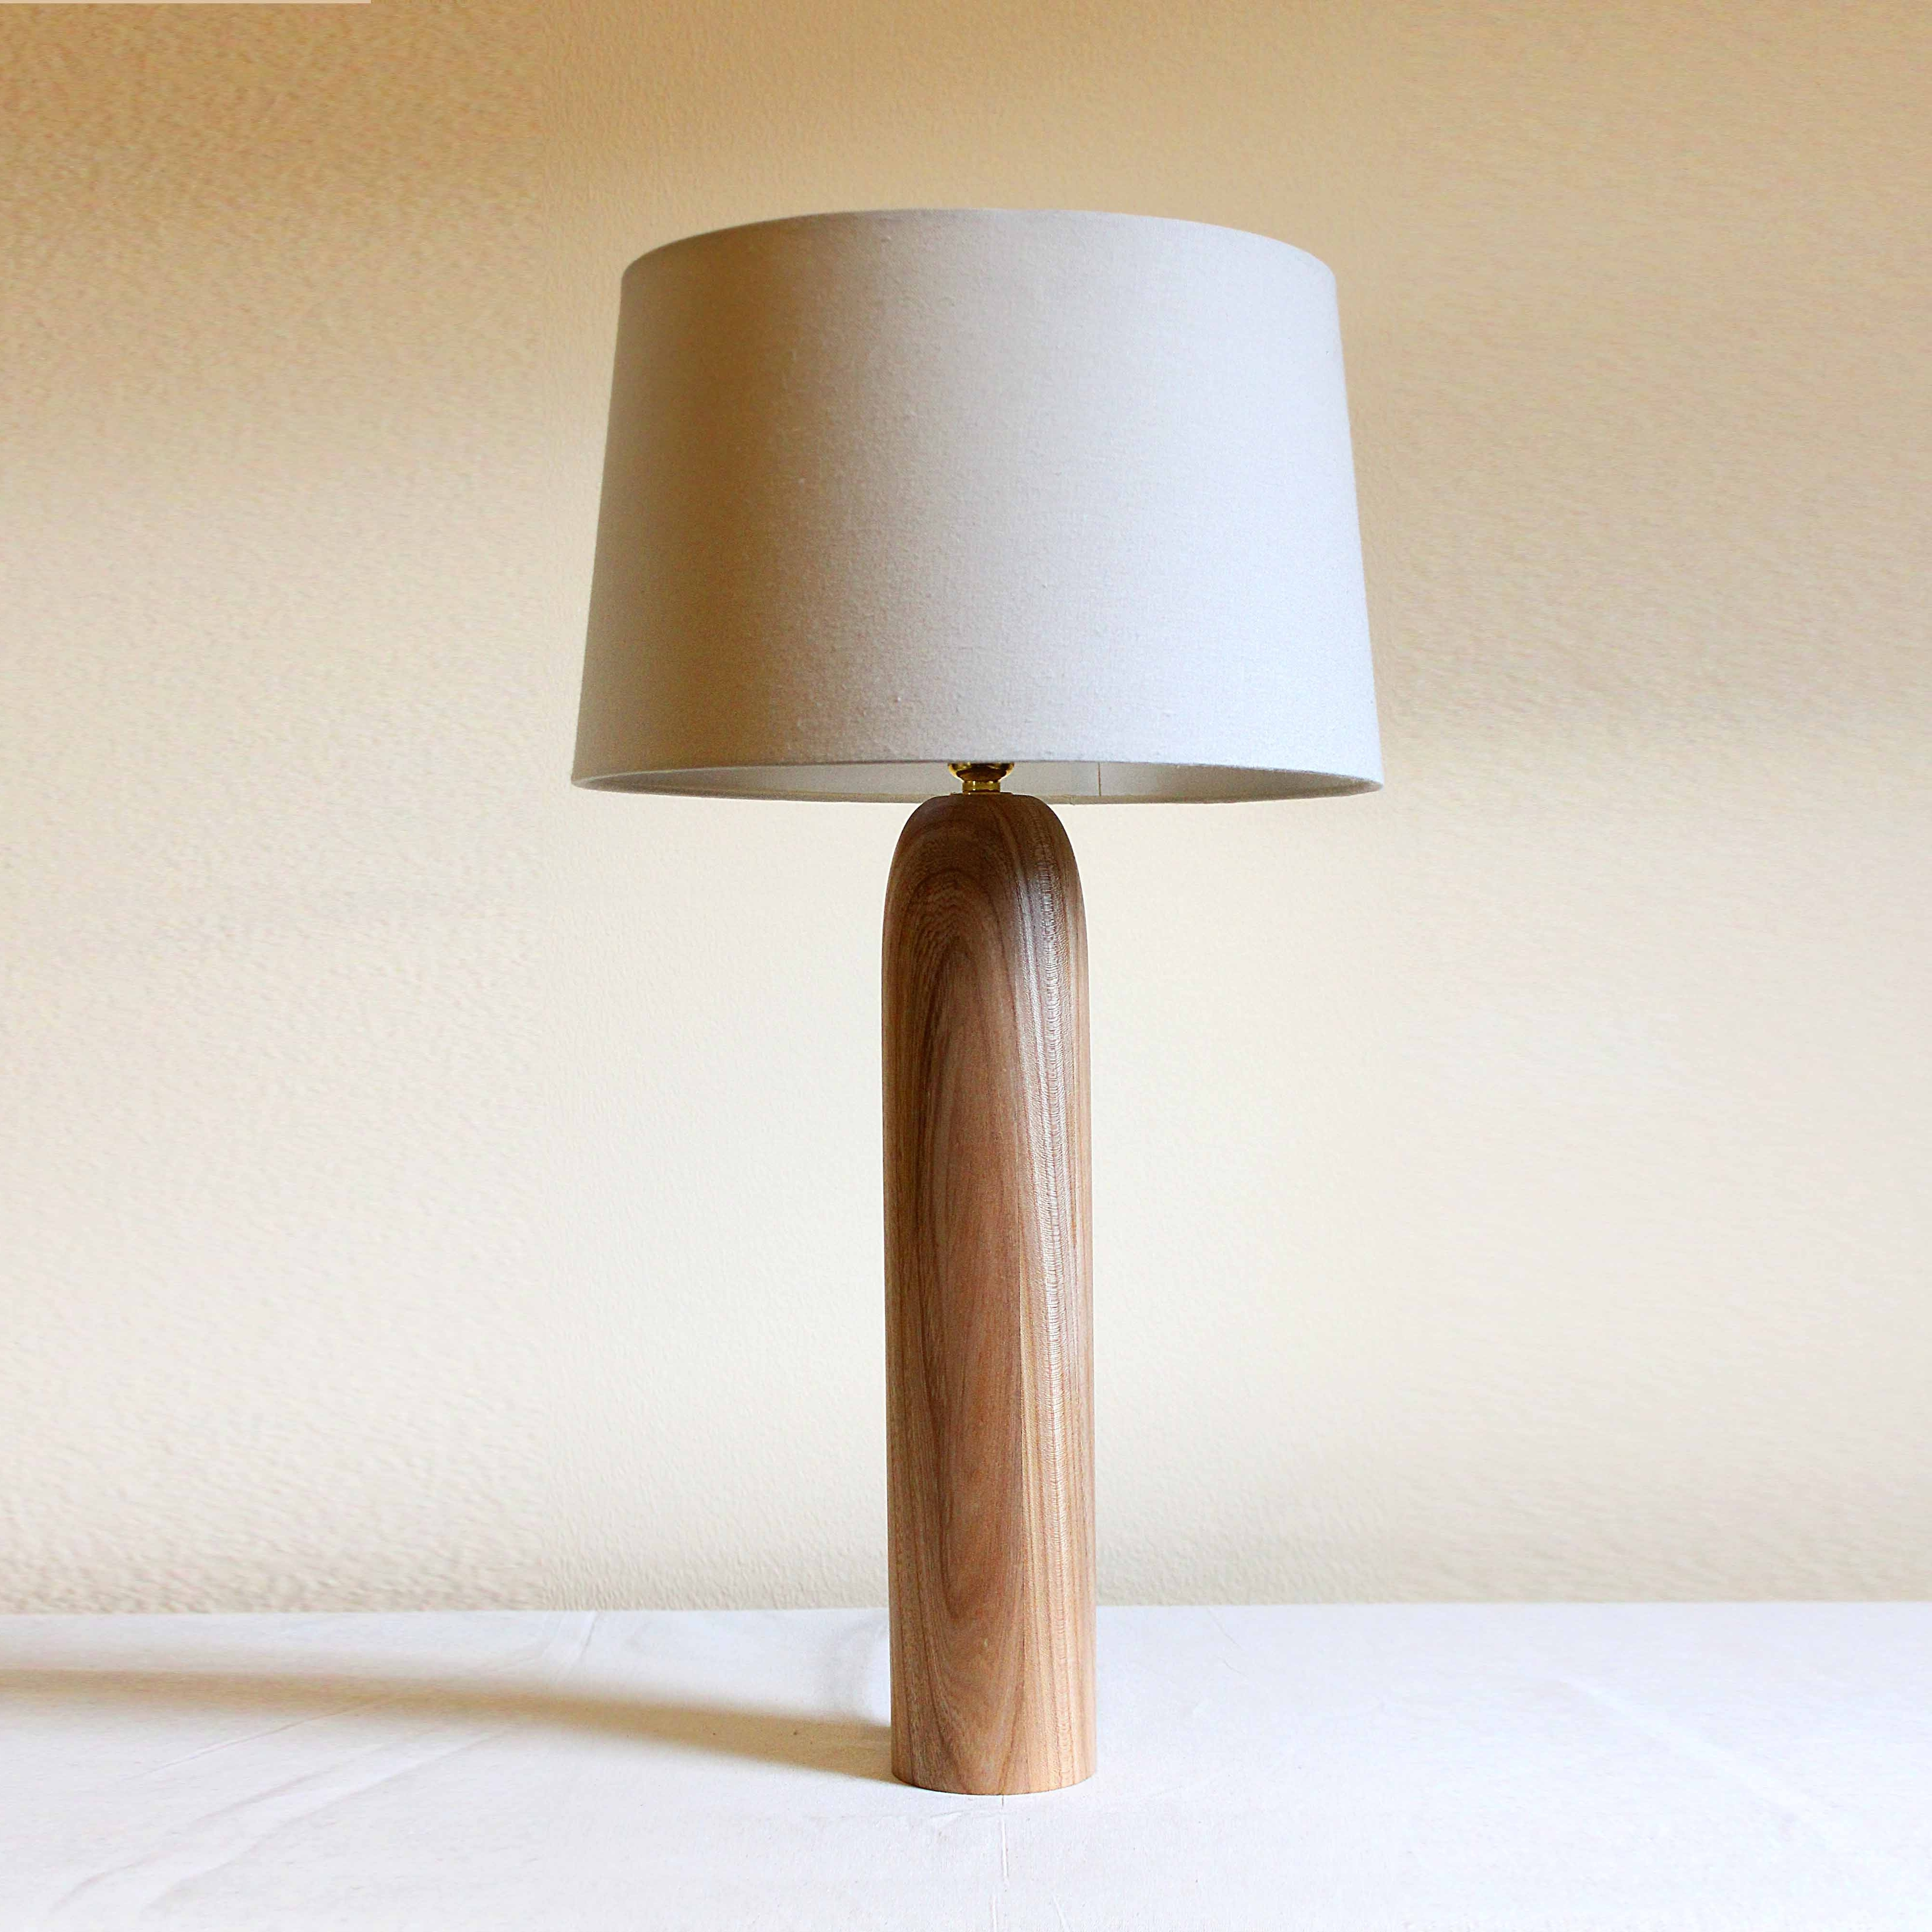 Battery Operated Living Room Table Lamps Intended For Best And Newest Top 68 Skookum Possini Ceiling Lights Battery Operated Table Lamps (View 8 of 15)